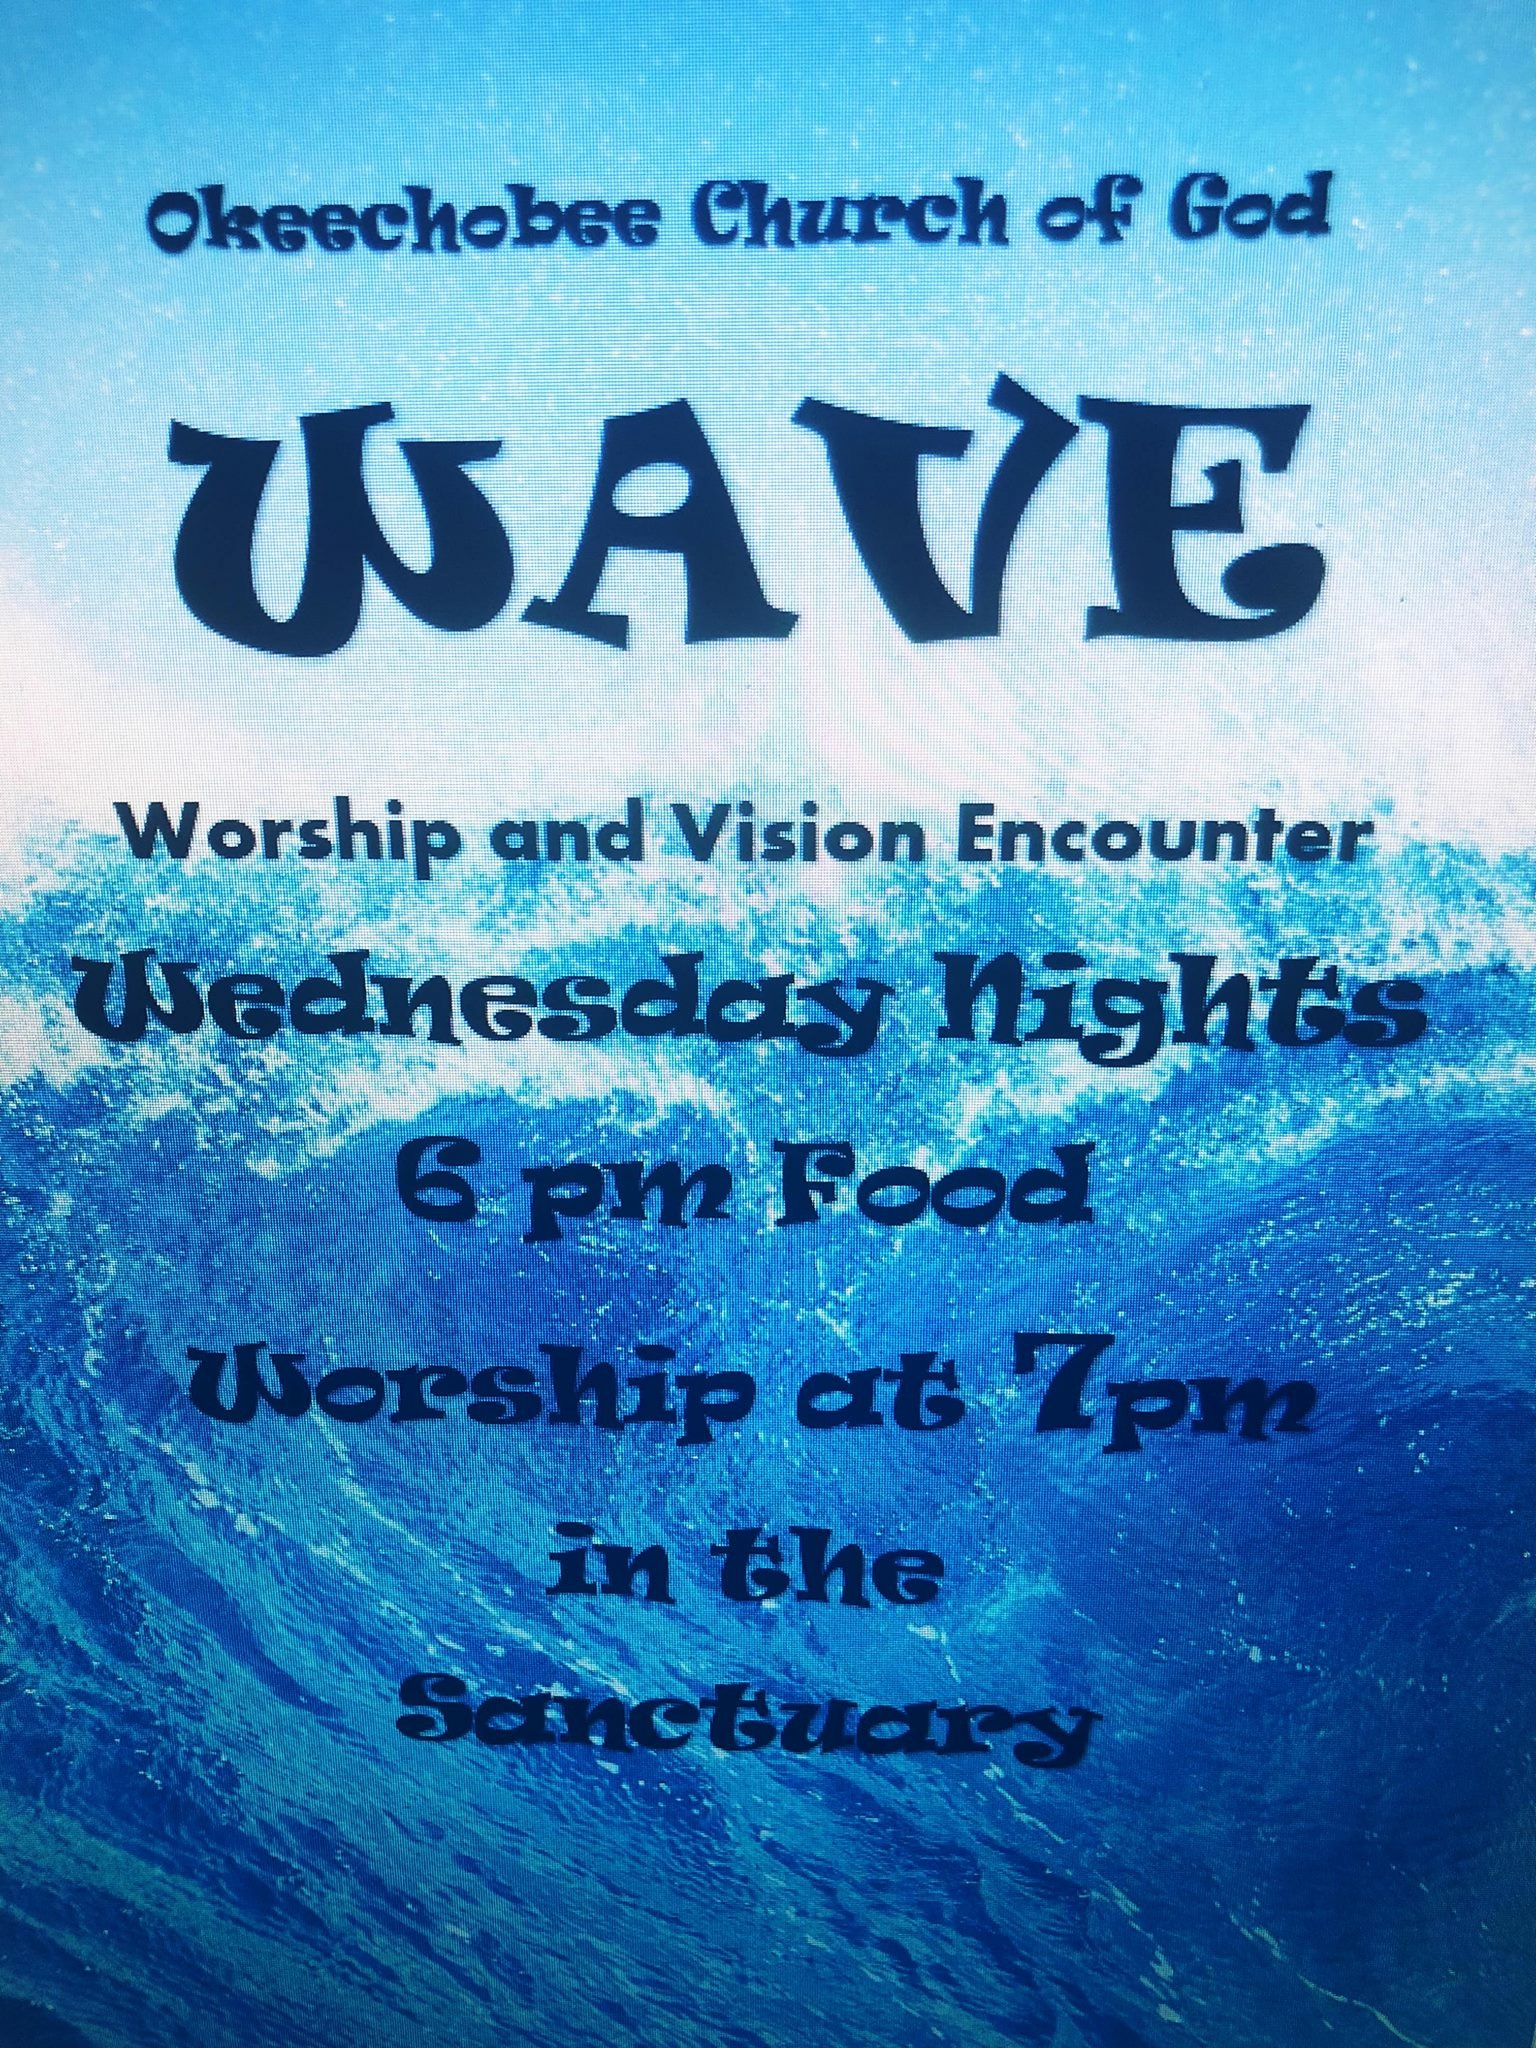 WAVE Ministries @ Okeechobee Church of God